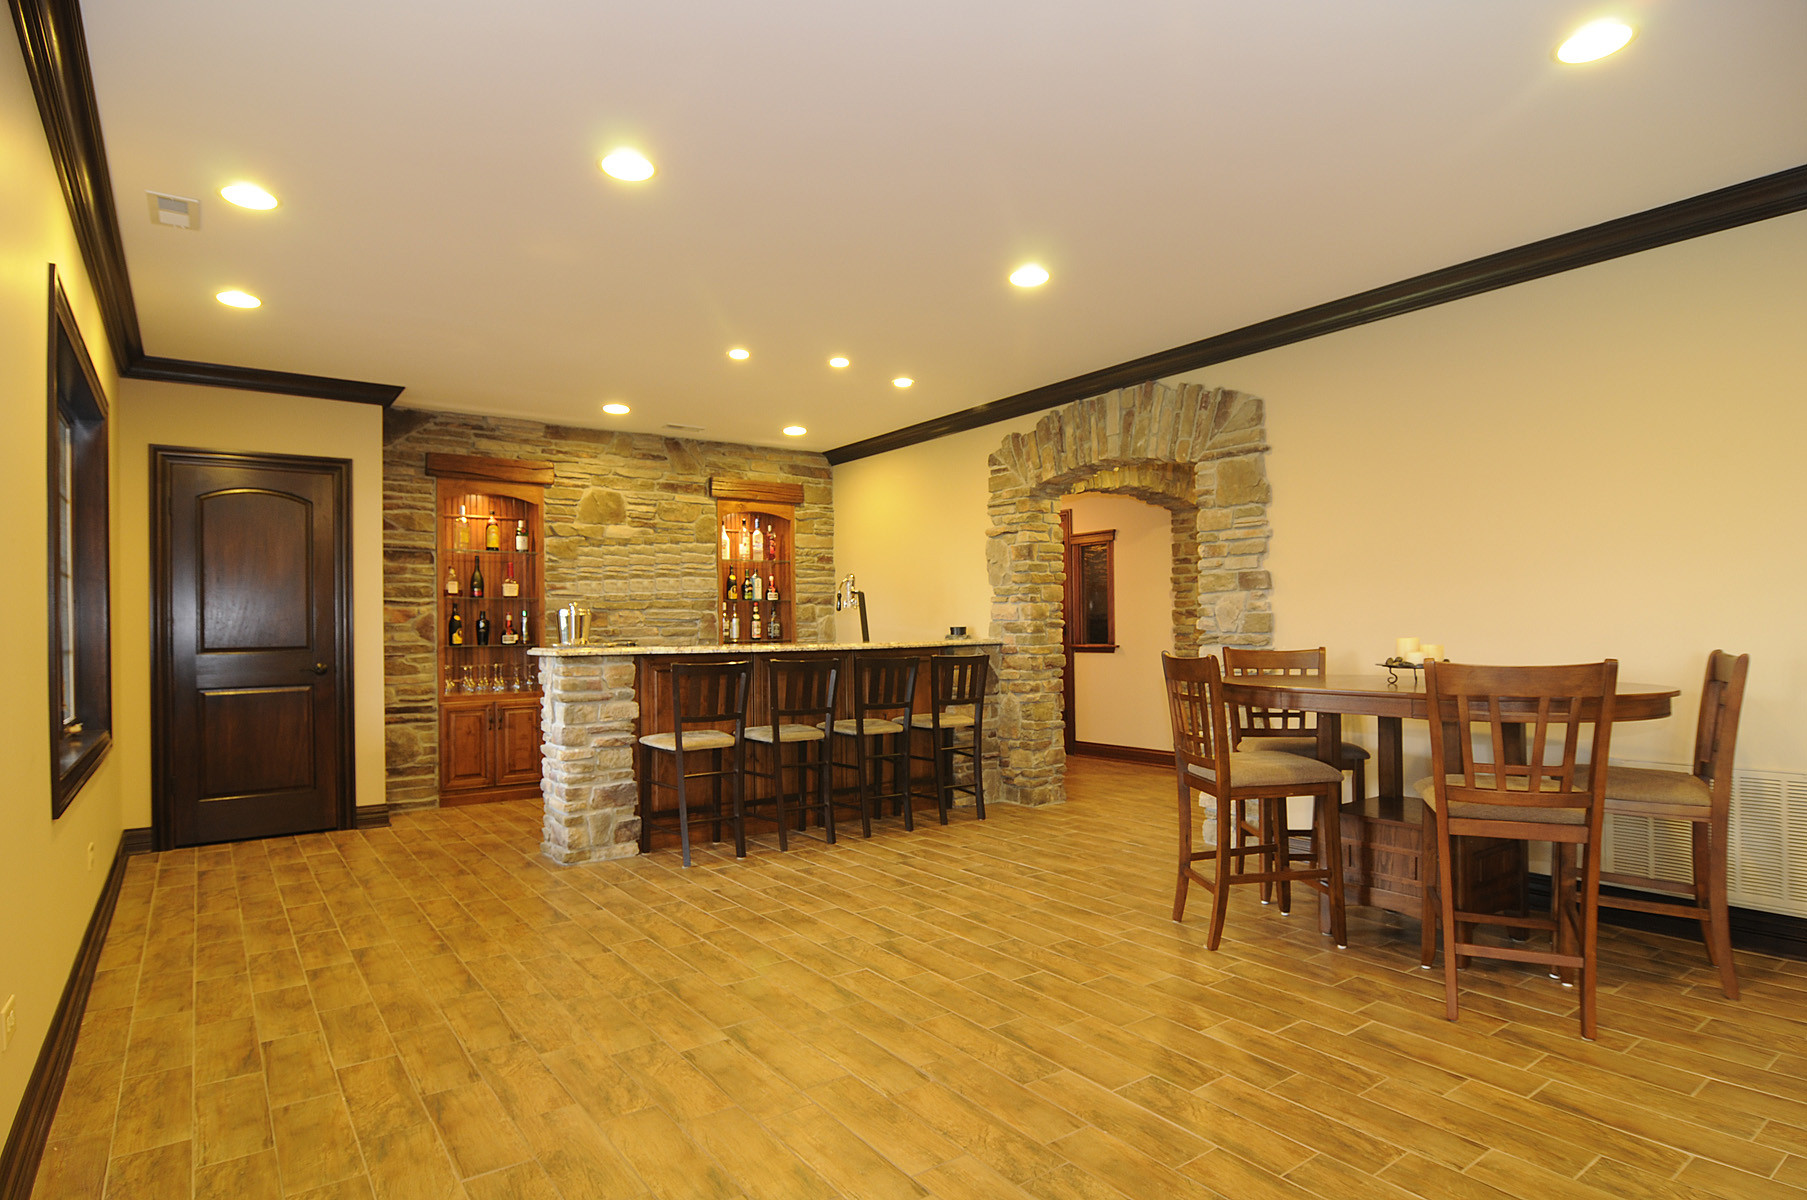 Best ideas about Remodel Basement Ideas . Save or Pin Basement Remodel Ideas as Abundant Space for New Lifestyle Now.